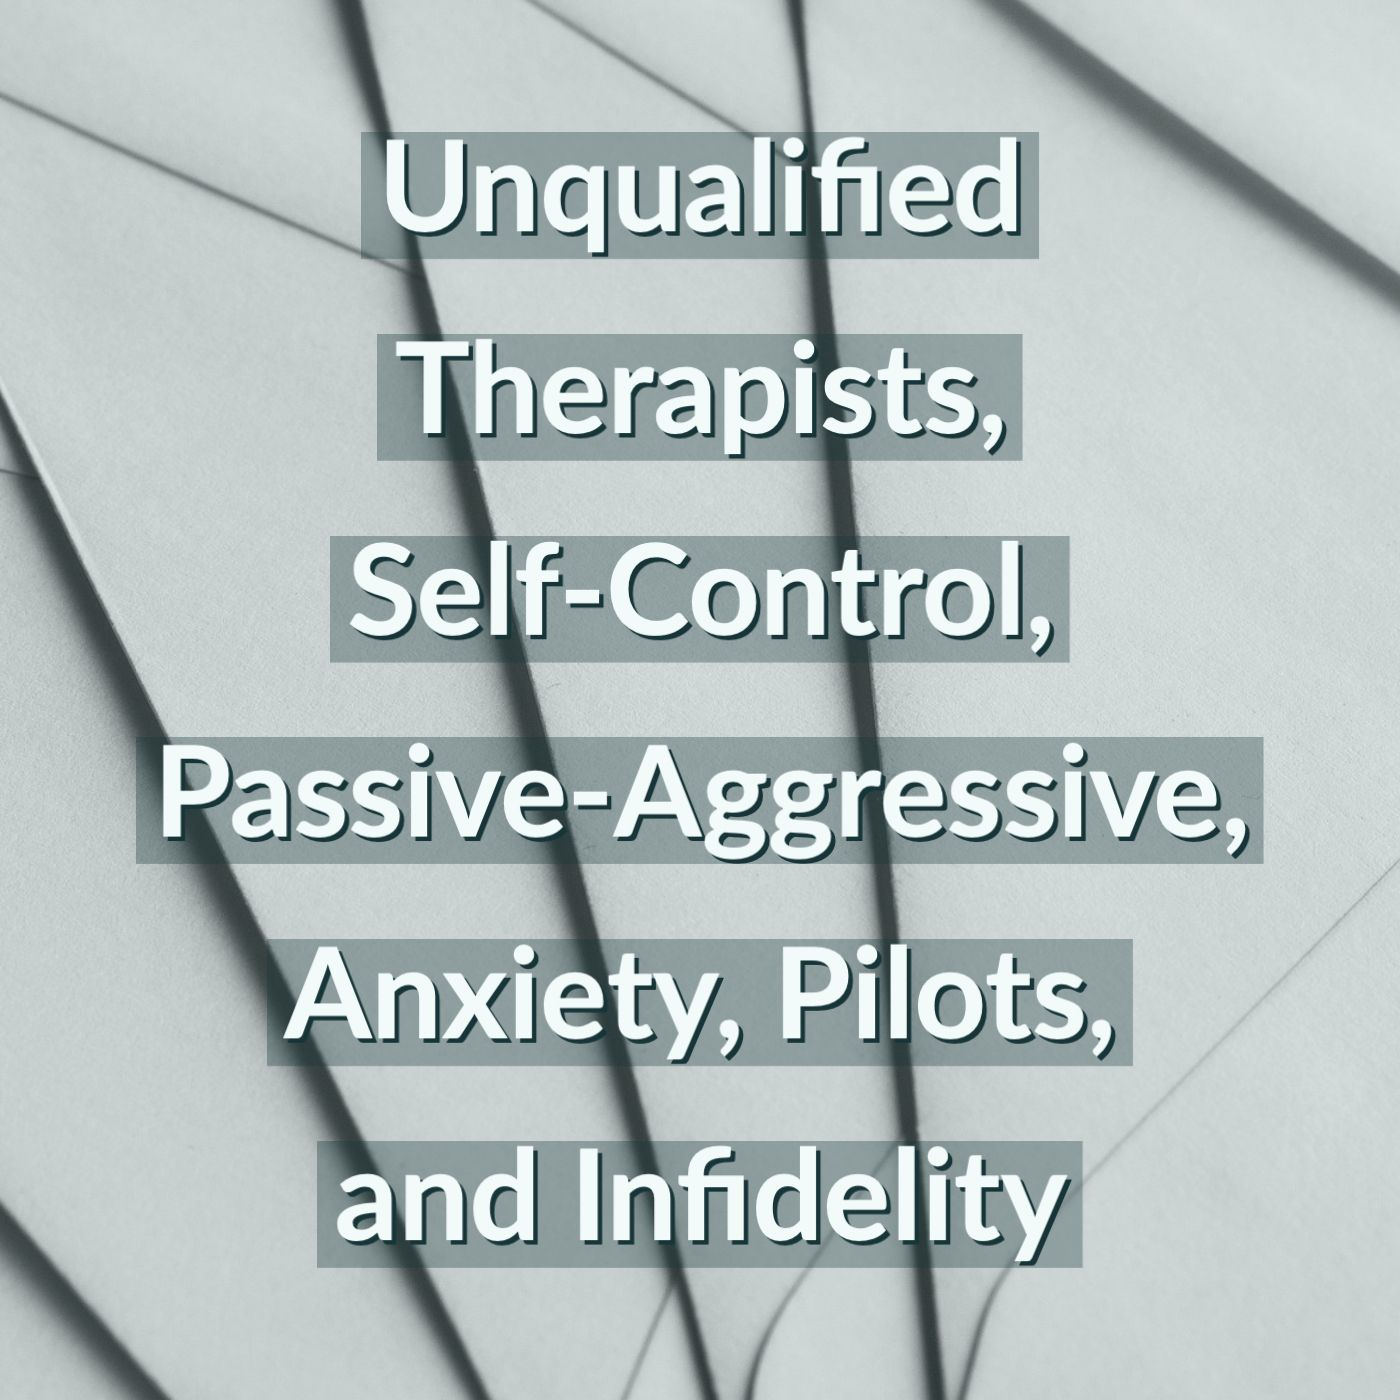 Unqualified Therapists, Self-Control, Passive-Aggressive, Anxiety, Pilots, and Infidelity